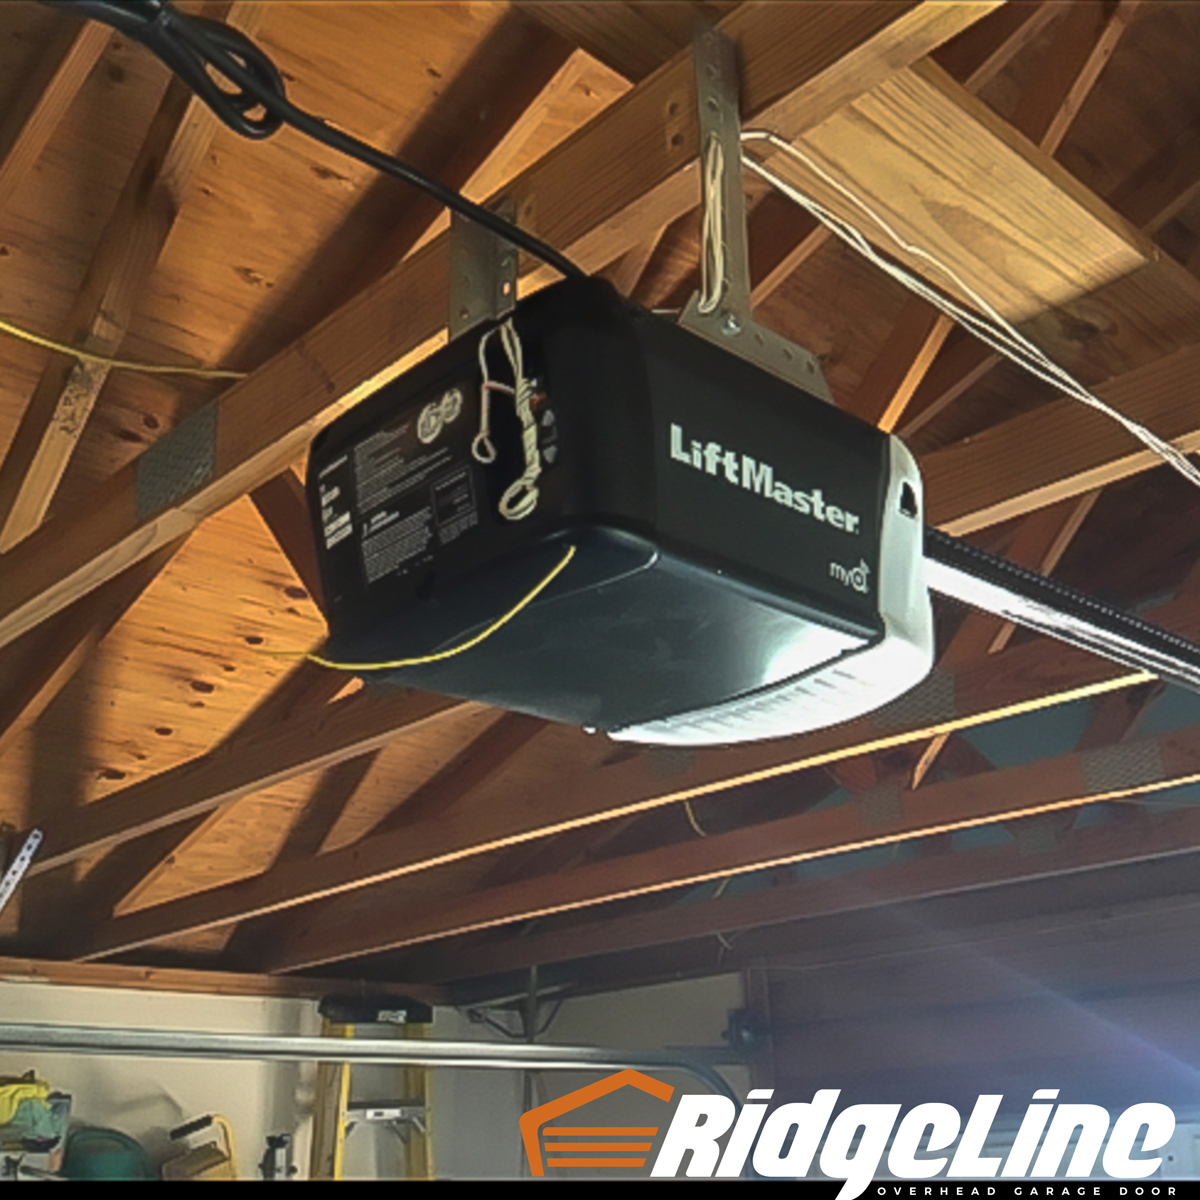 garage,door,overhead,austin,repair,installation,company,liftmaster,service,commercial,residential,loading dock,operators,gate operators,sectional garage door,manor